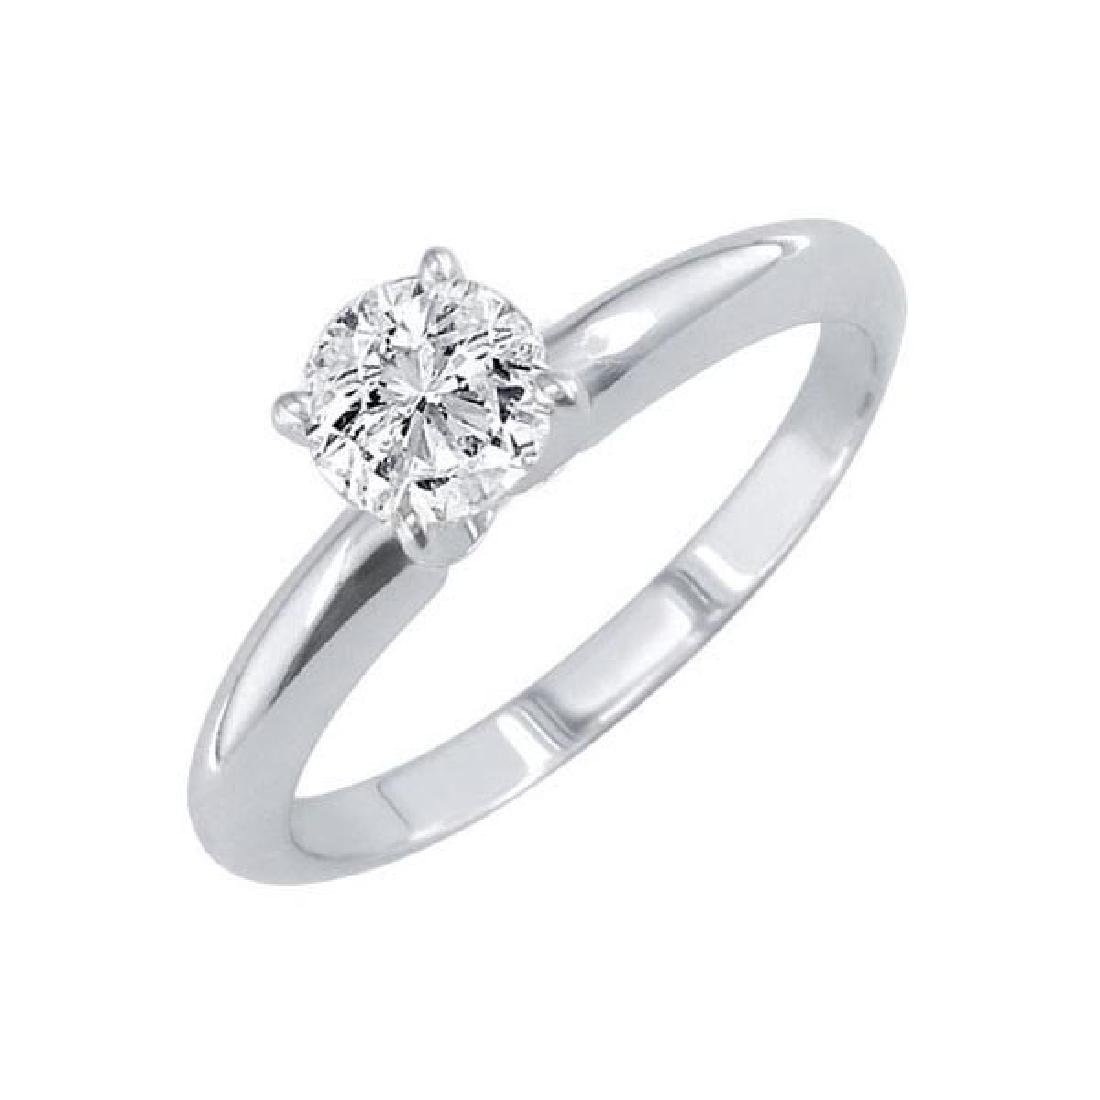 Certified 0.78 CTW Round Diamond Solitaire 14k Ring G/I